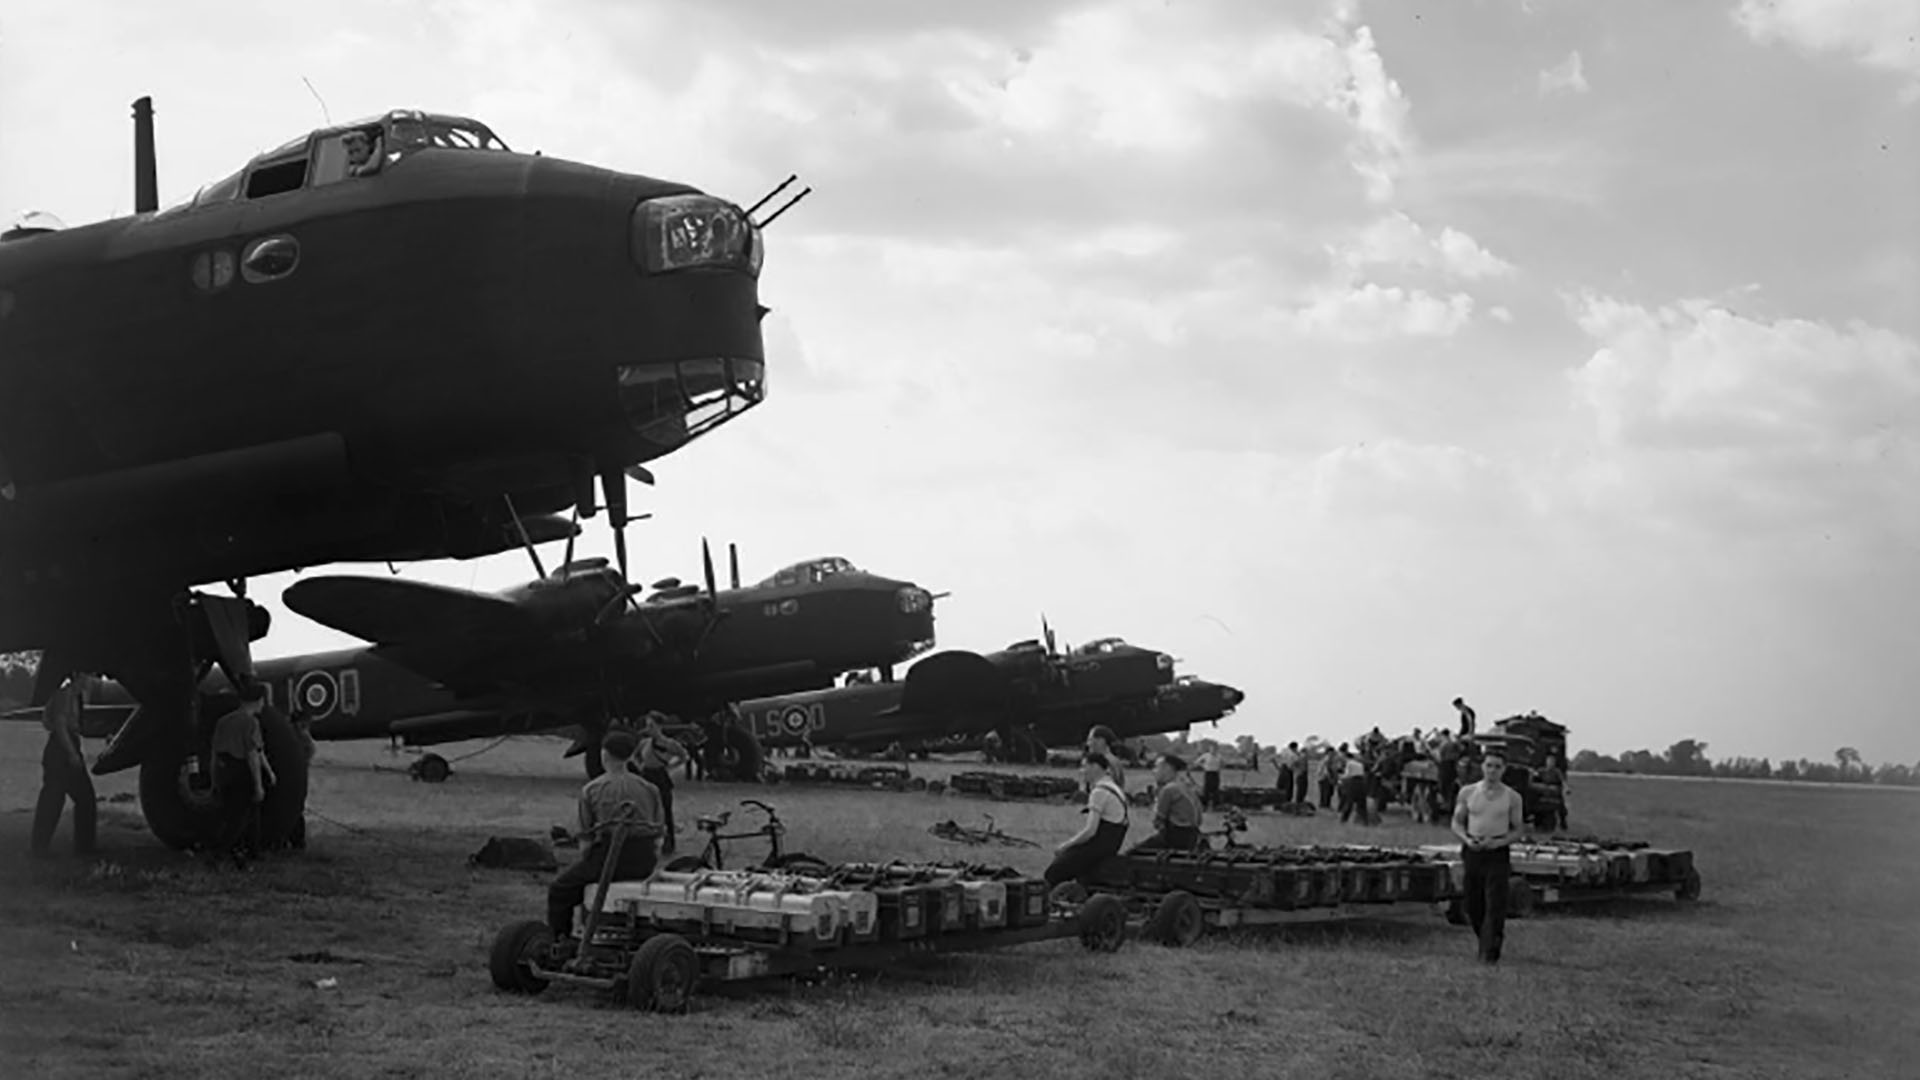 RAF 15 Squadron in Bomber Command